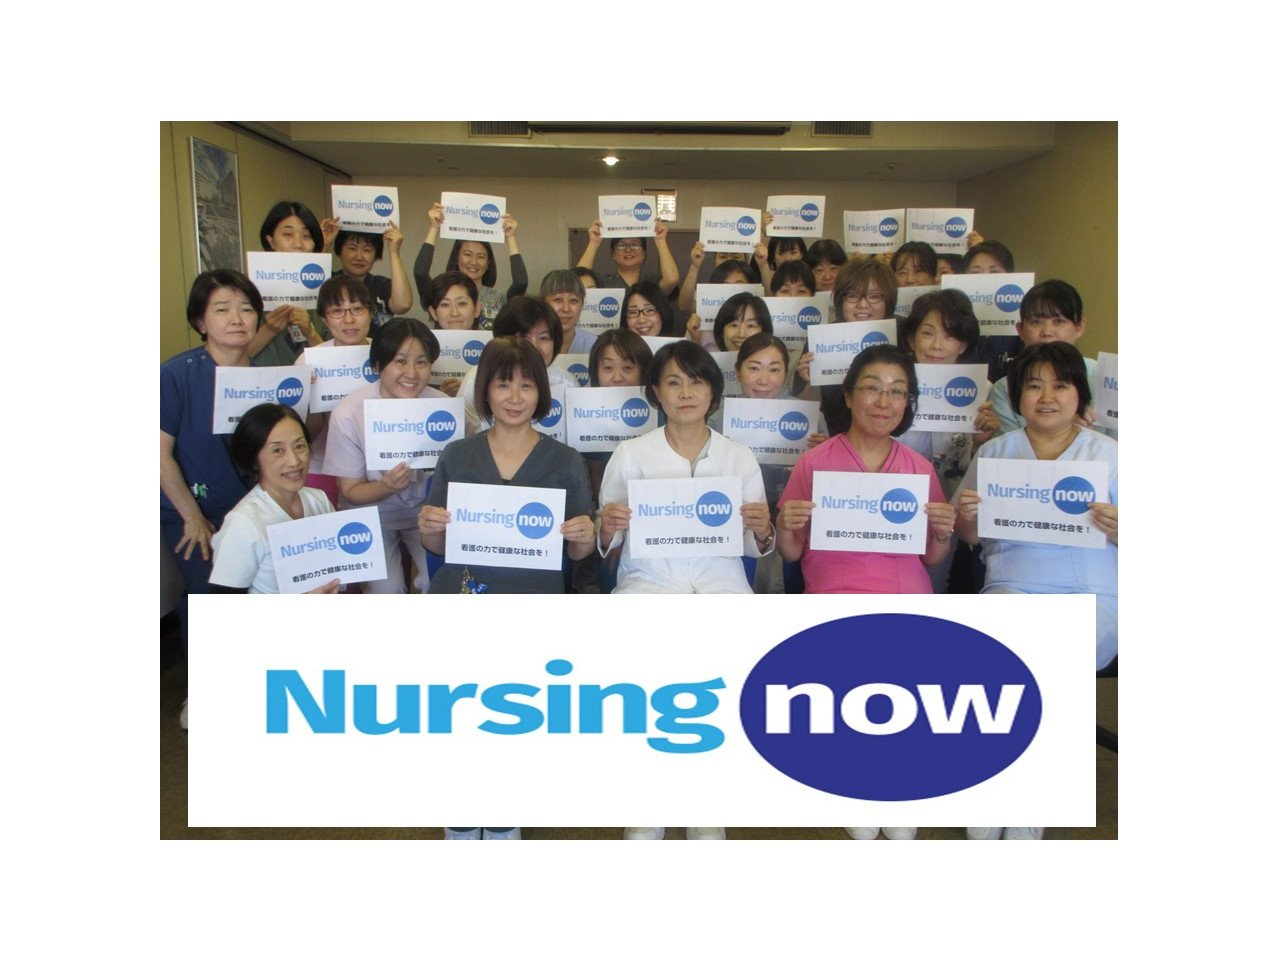 Nursing now